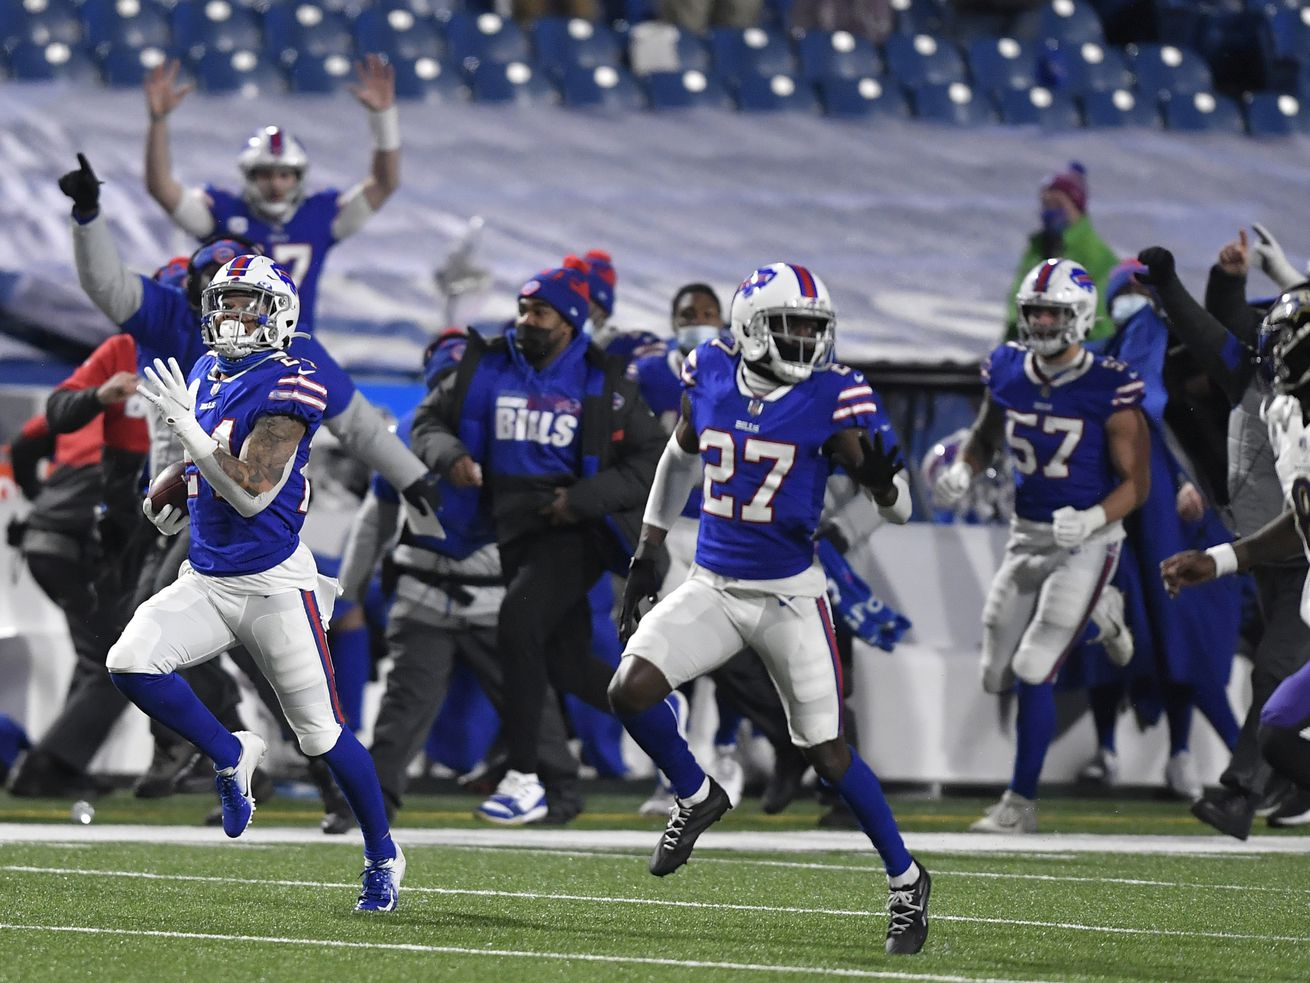 Weber State's Taron Johnson's pick-6 ties NFL playoff record; Utah's Tyler Huntley gets first postseason action